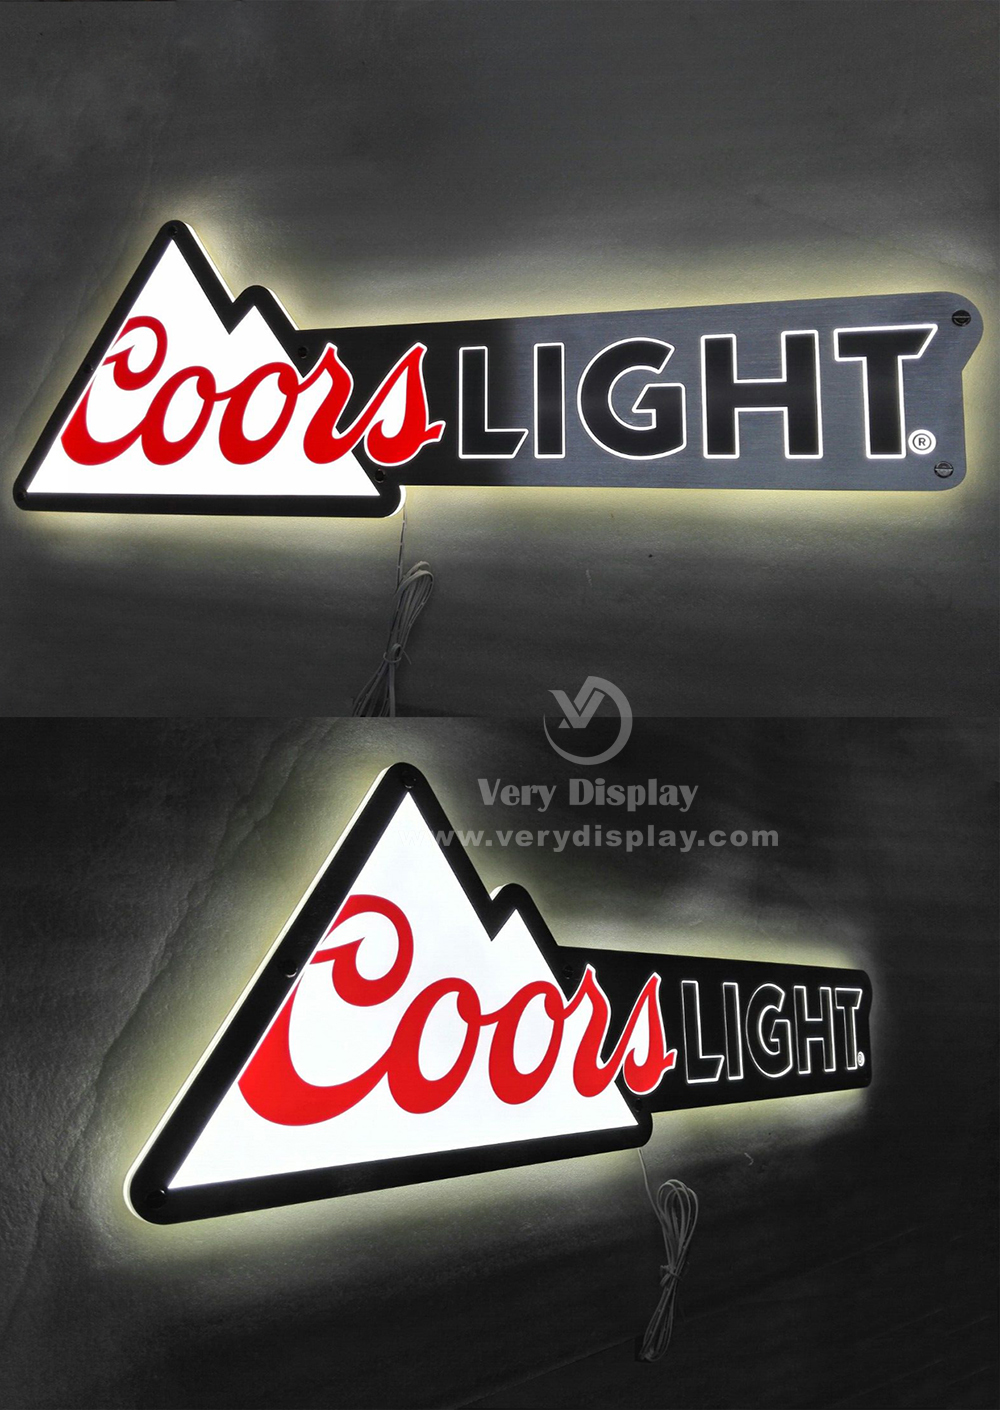 coorslight signs